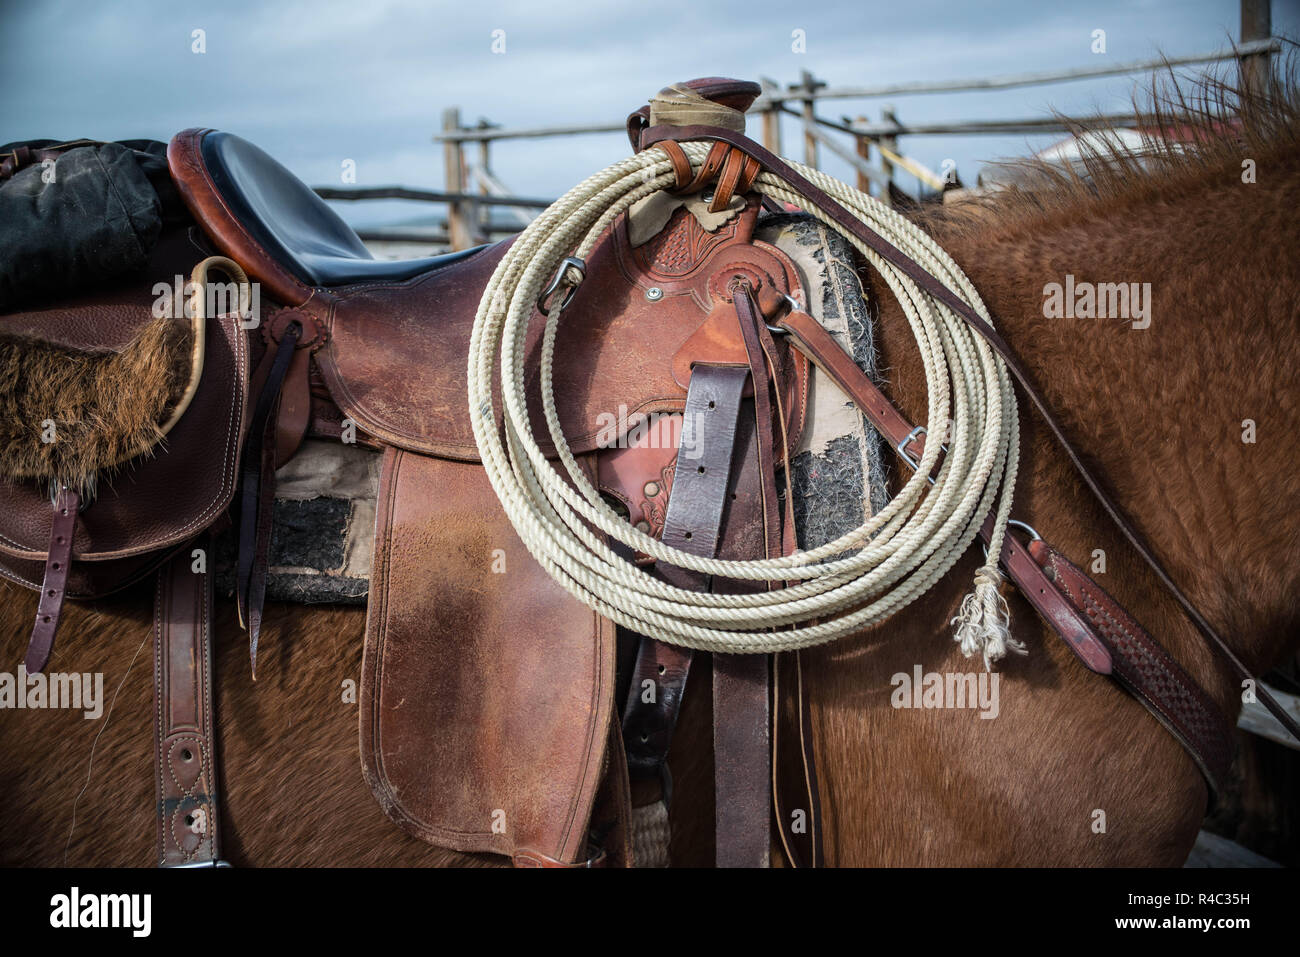 Sorrel horse saddled up with lariat rope and saddle bags ready to ride in wooden corral - Stock Image